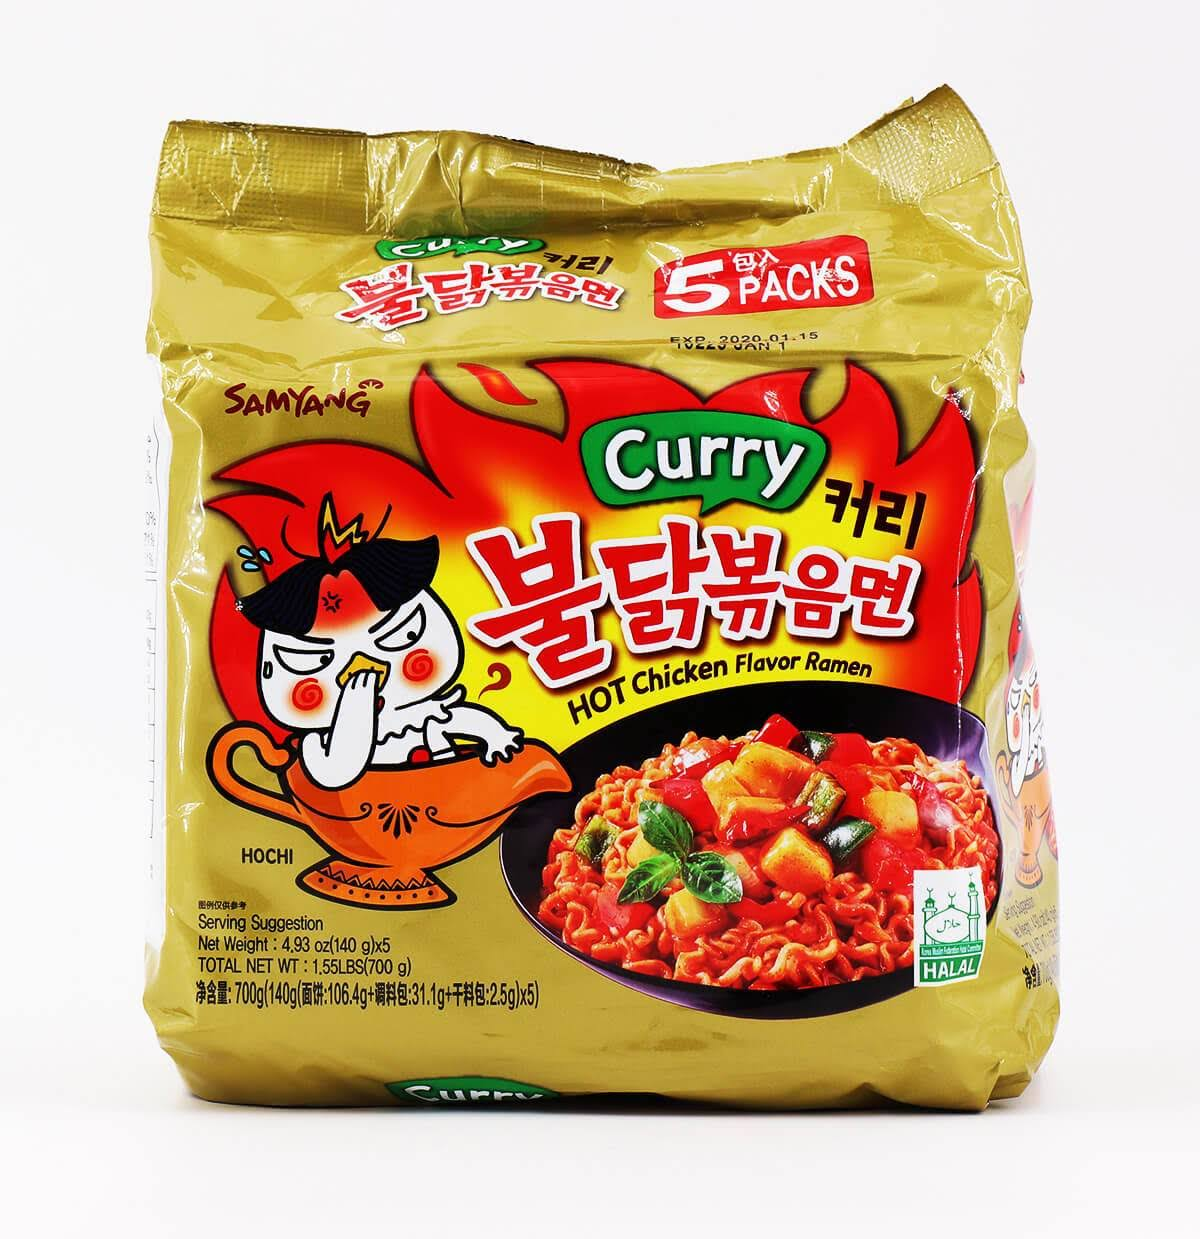 Samyang Hot Chicken Curry Flavor Ramen